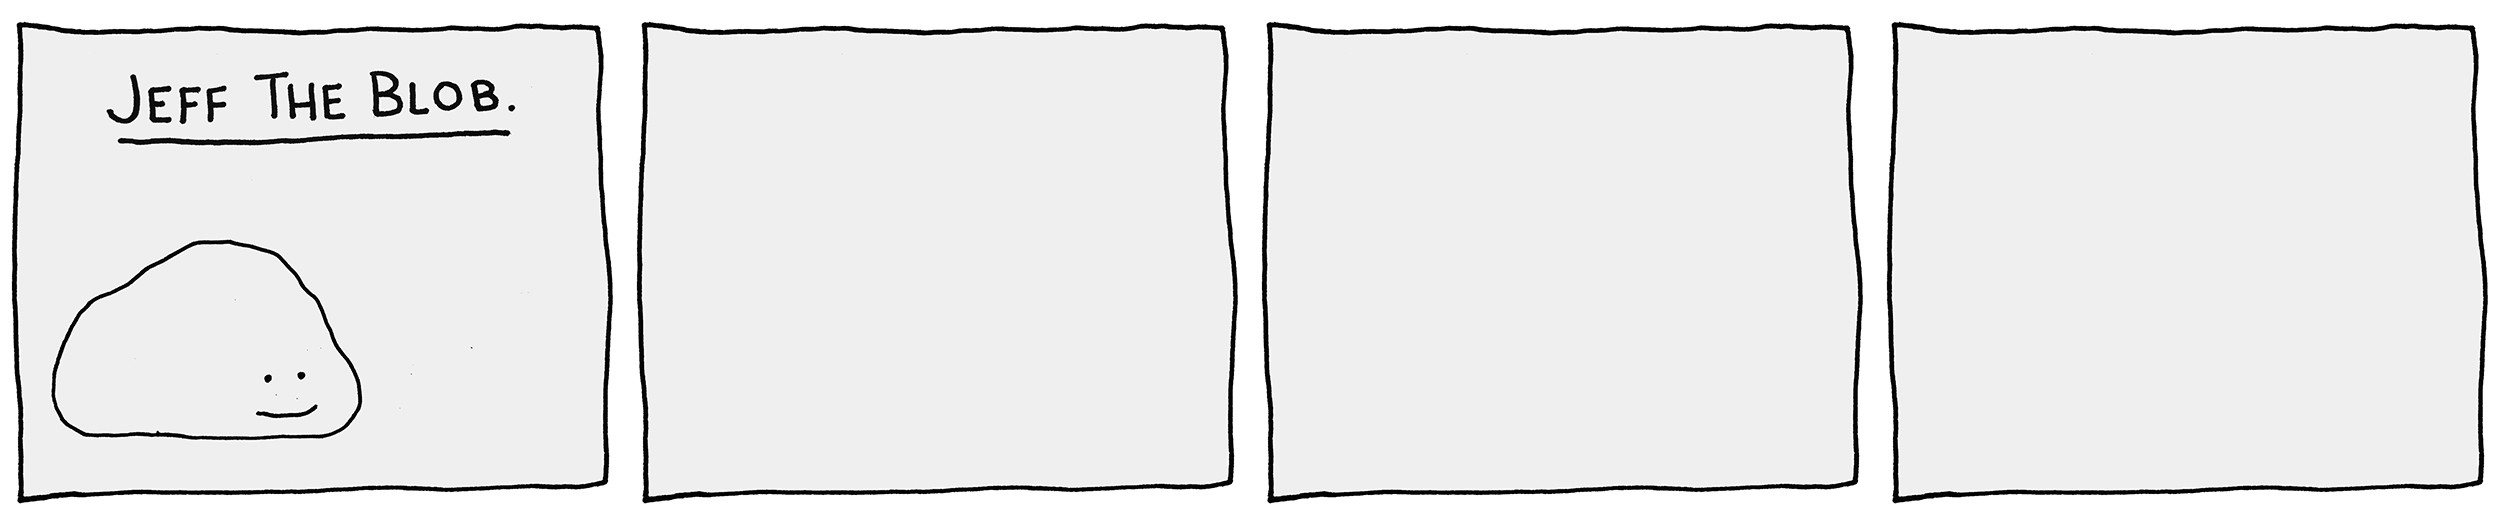 How to draw comics when you can't actually draw  - Chaz